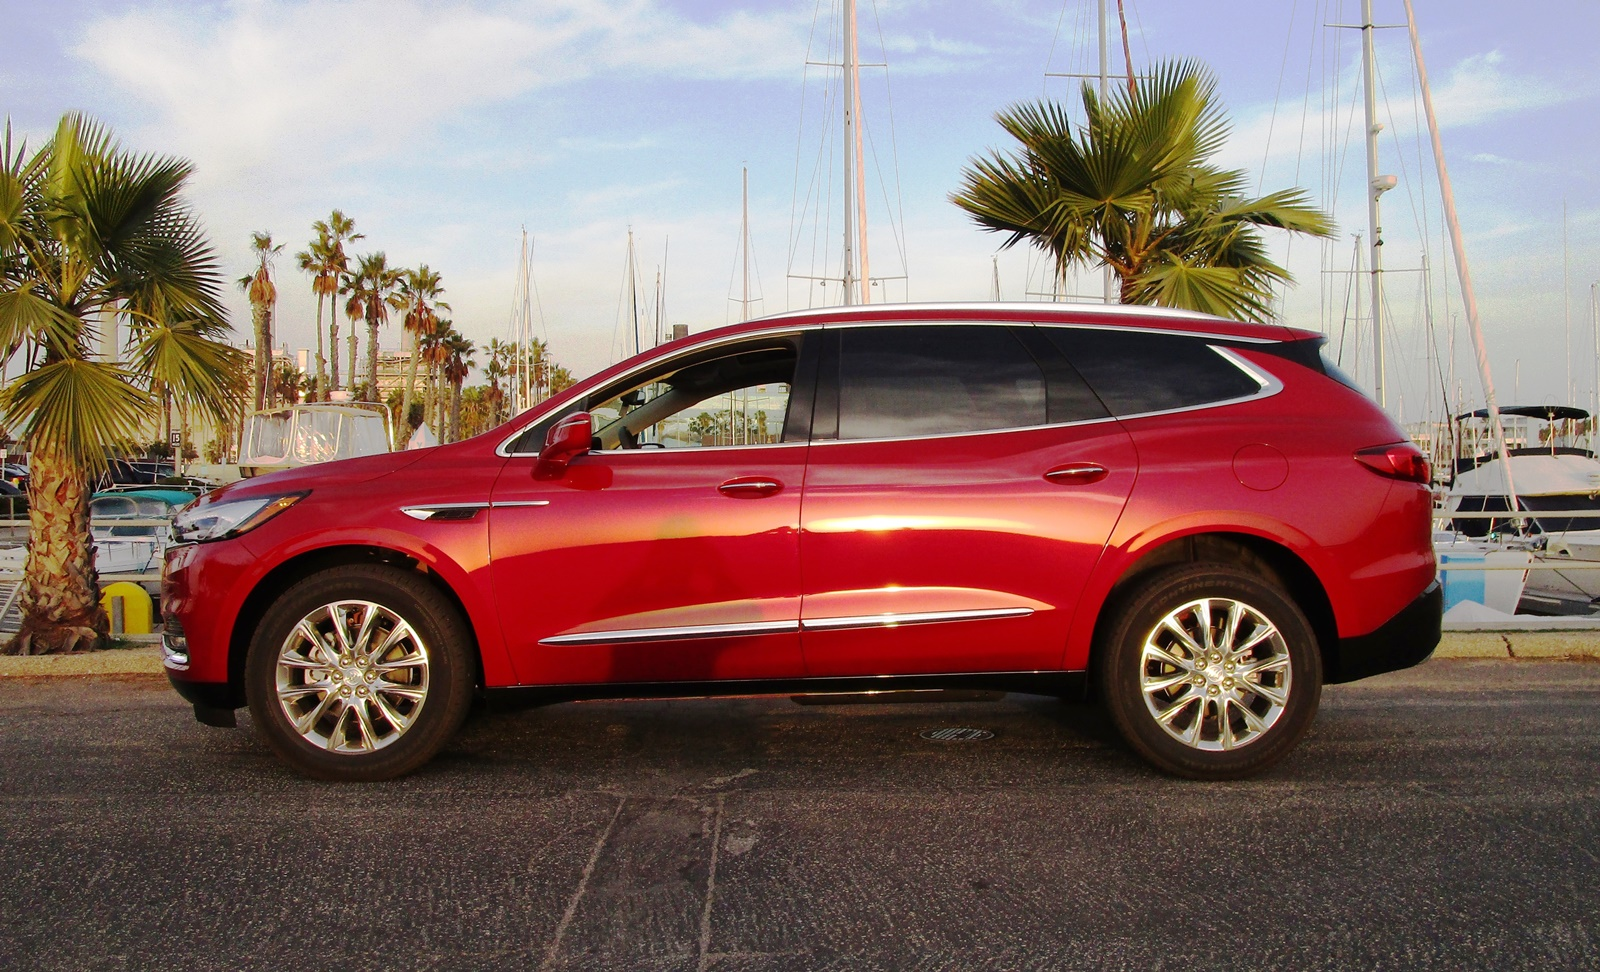 2018 buick enclave premium awd road test review by ben lewis. Black Bedroom Furniture Sets. Home Design Ideas